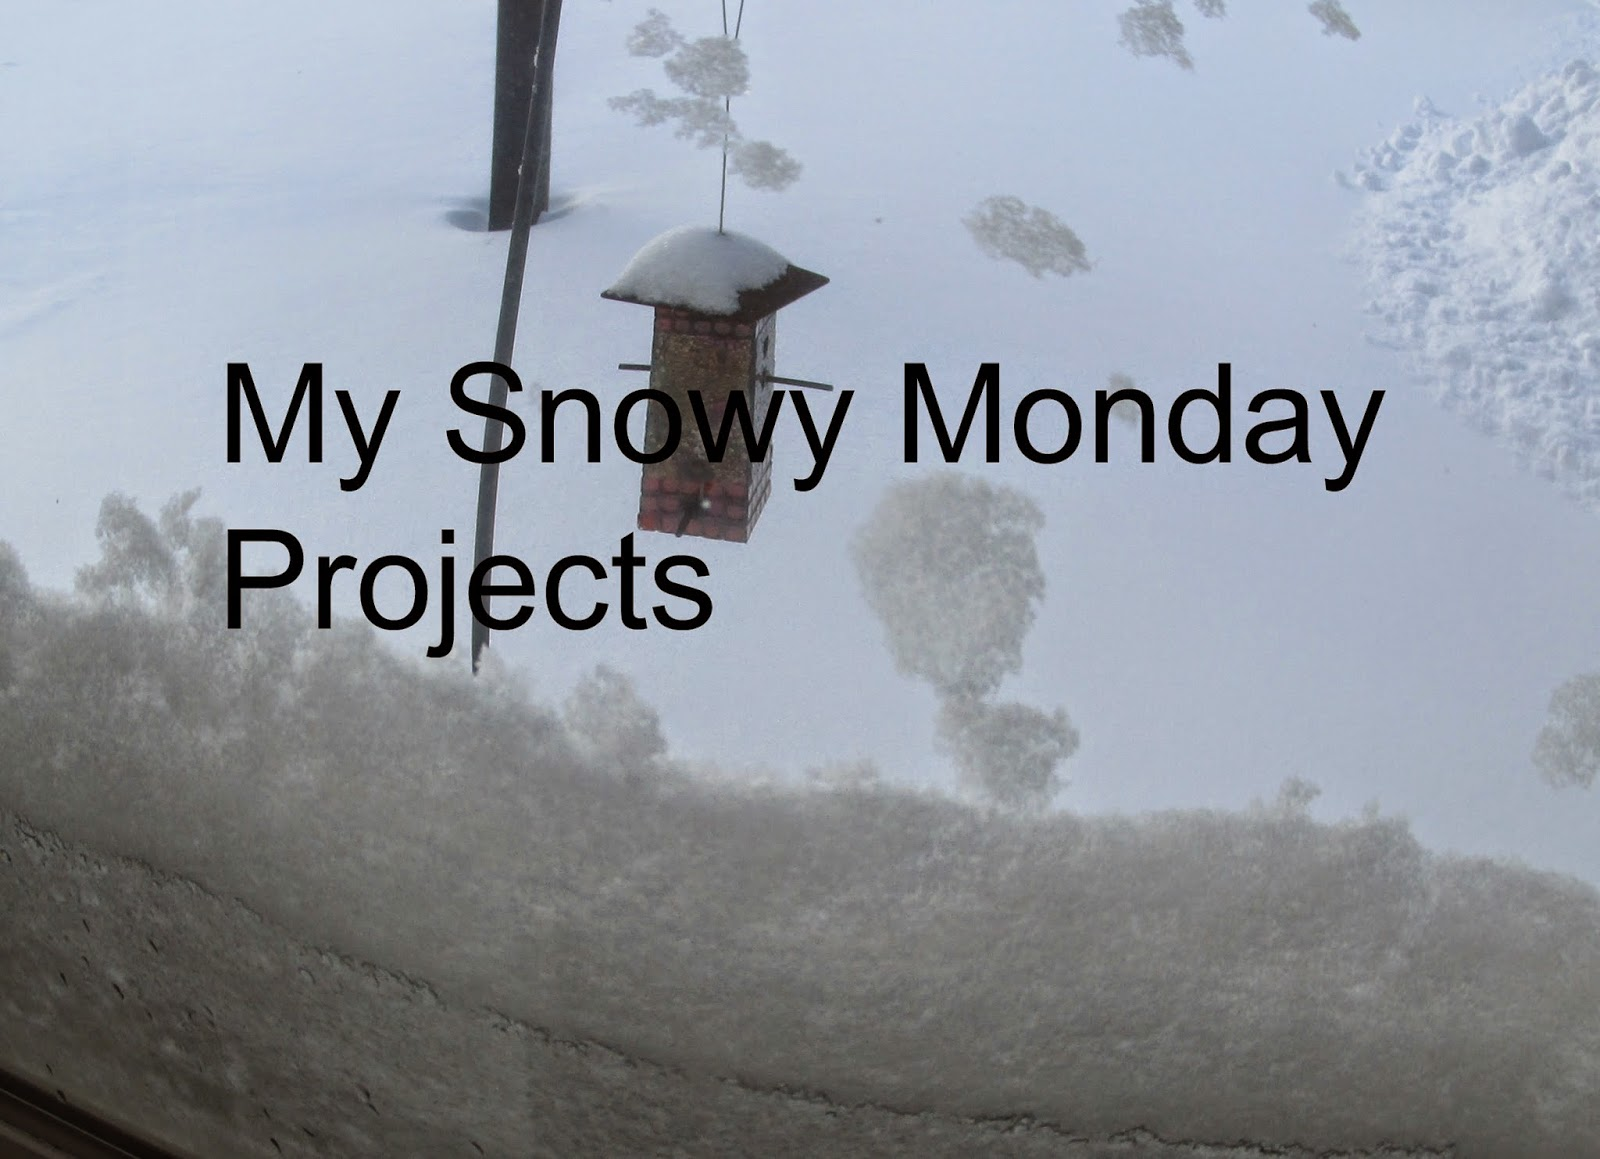 My Snowy Monday Projects